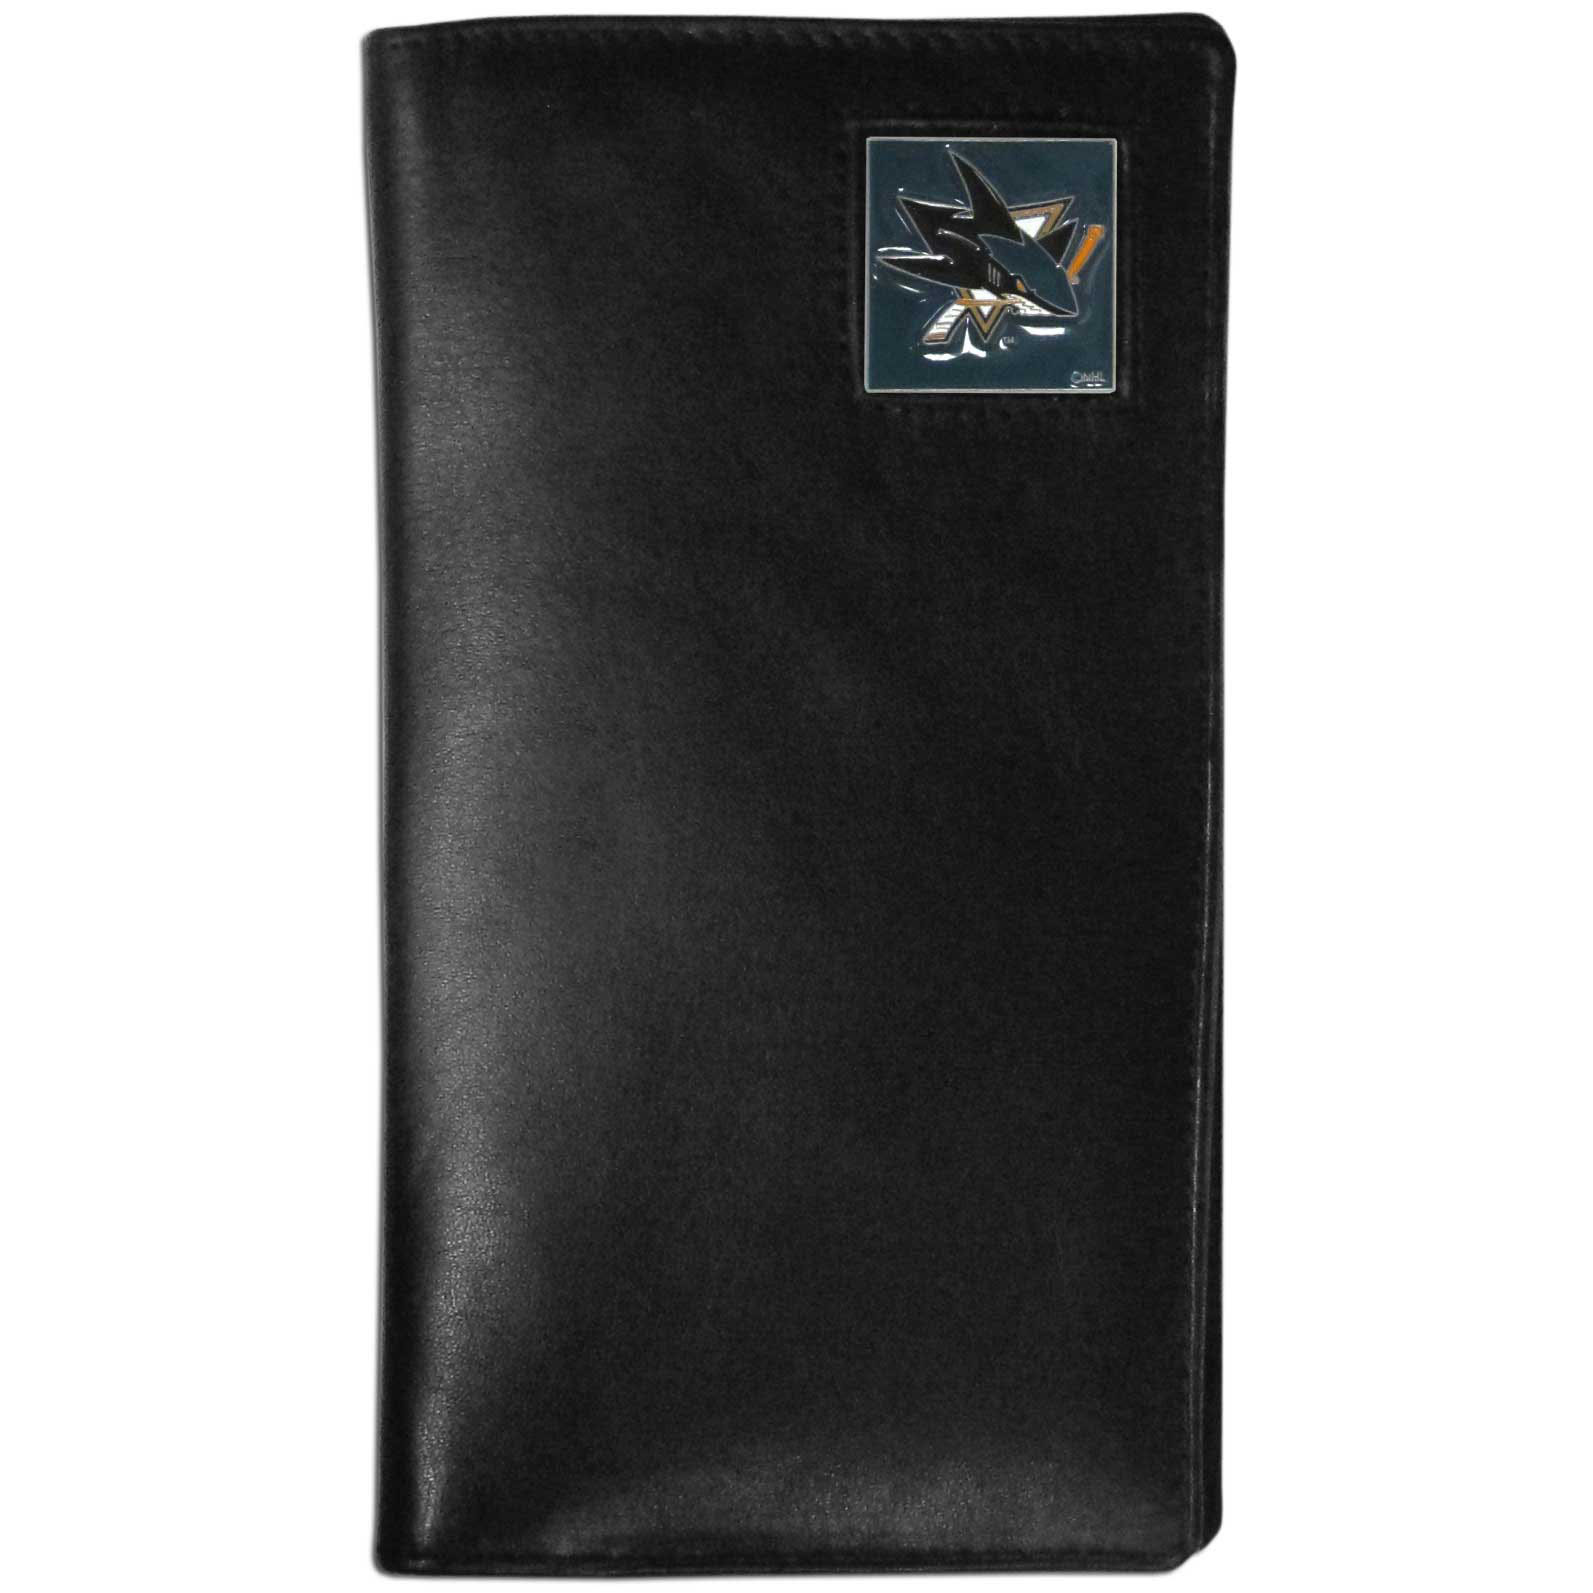 San Jose Sharks Tall Leather Wallet - This officially licensed San Jose Sharks tall leather wallet cover is made of high quality leather with a fully cast metal San Jose Sharks emblem with enameled San Jose Sharks color detail. The cover fits both side and top loaded checks and includes a large zippered pocket, windowed ID slot, numerous credit card slots and billfold pocket.